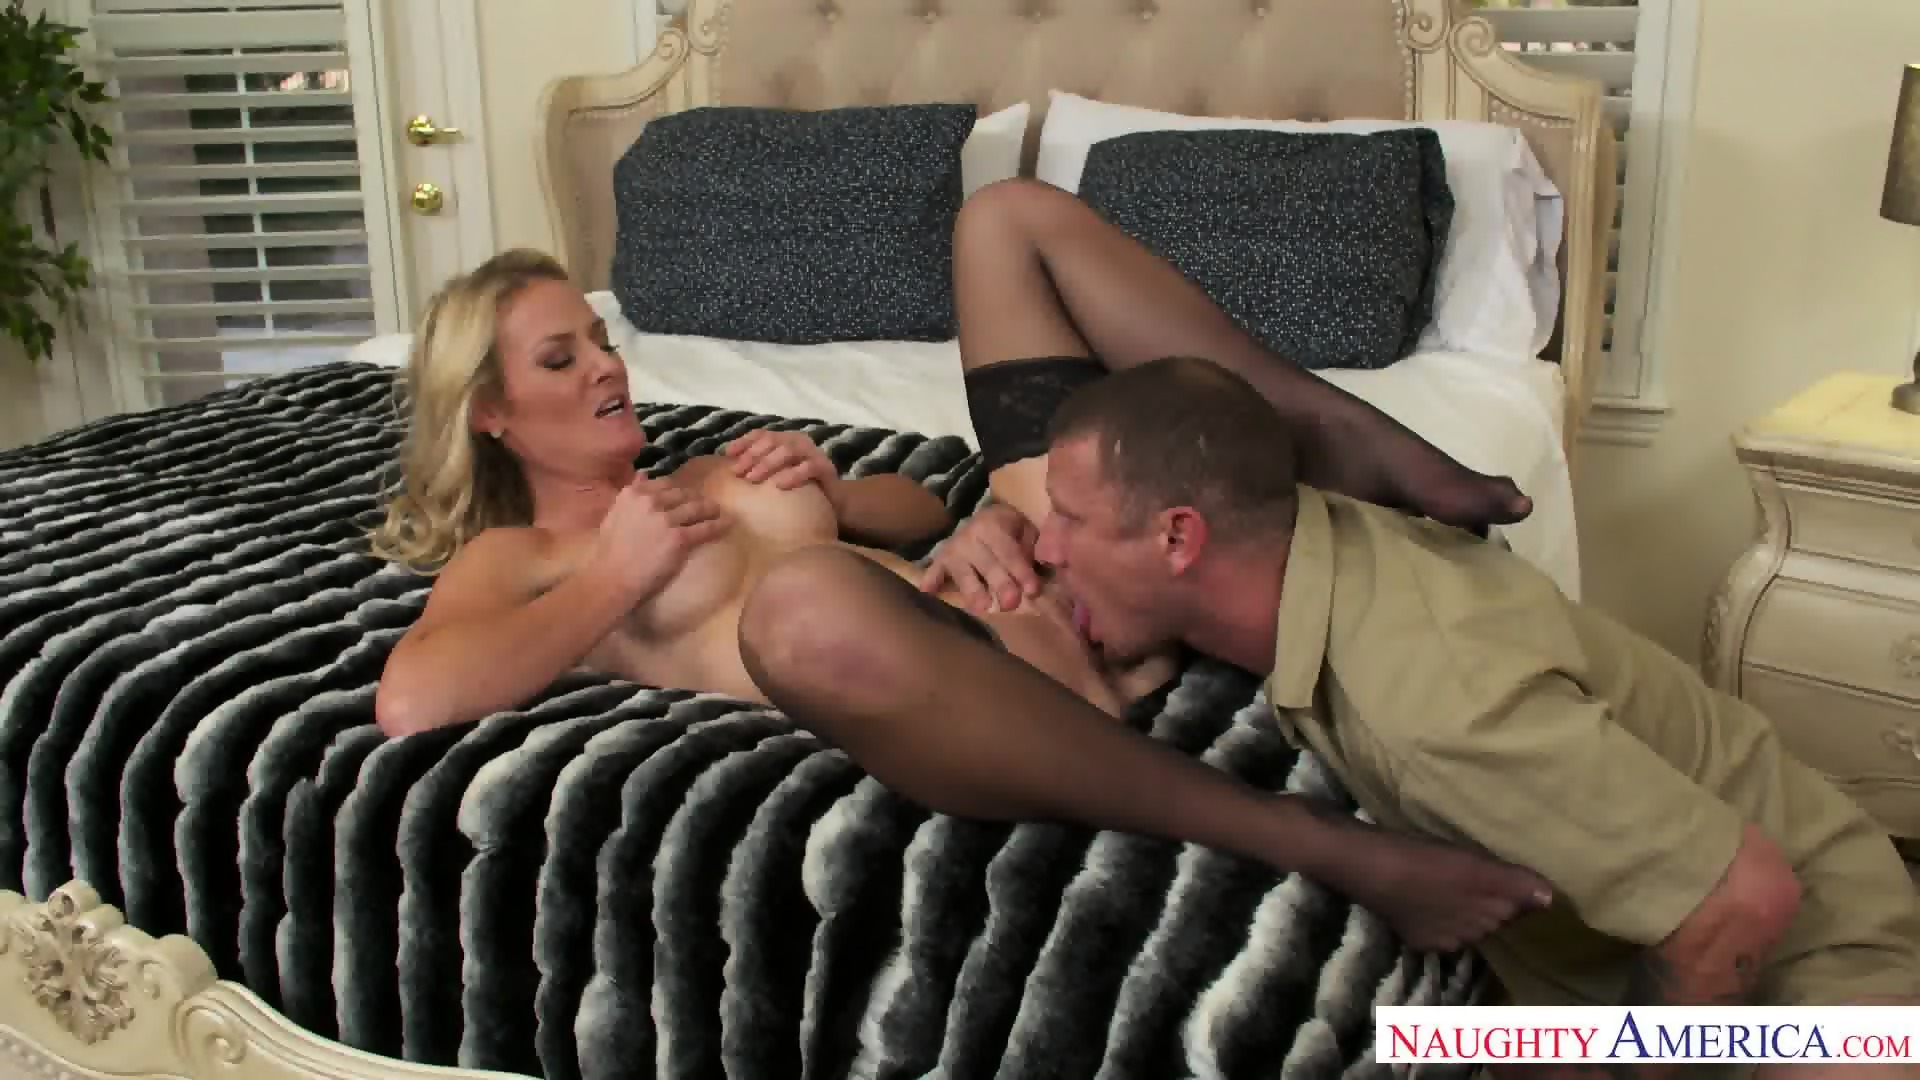 Mature Blonde Addicted To Sex Sydney Hail Eporner